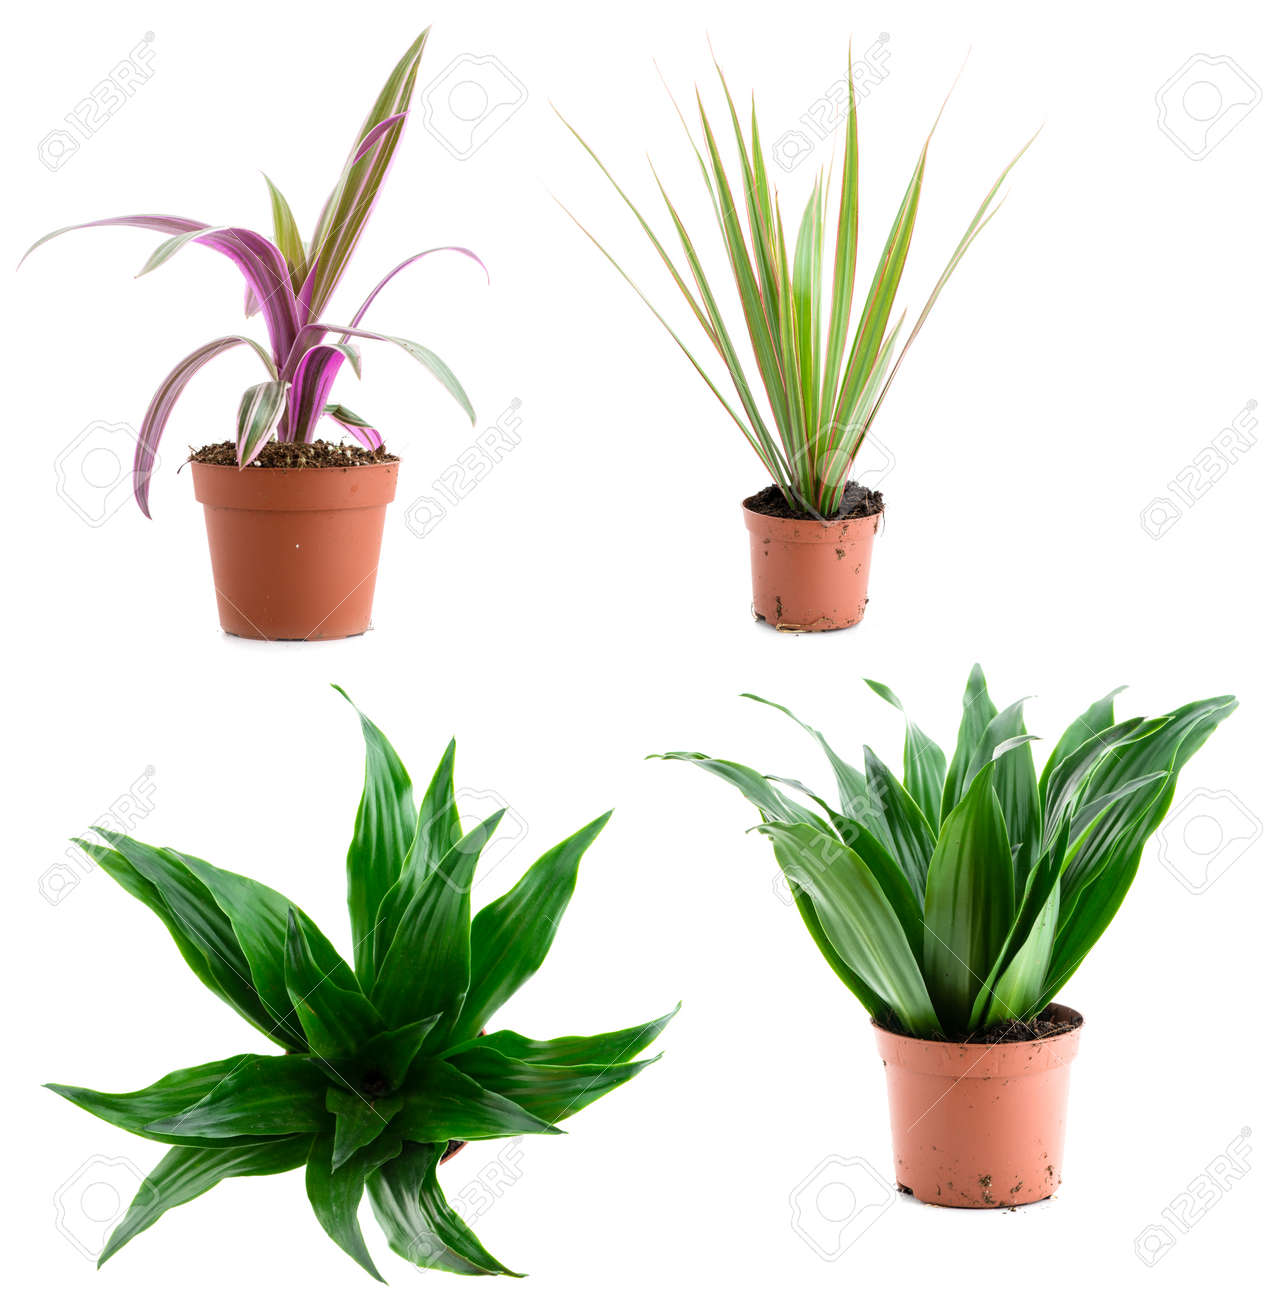 Dracaena Plant Set Of Pot Plant Dracaena Different Types Isolated On A White